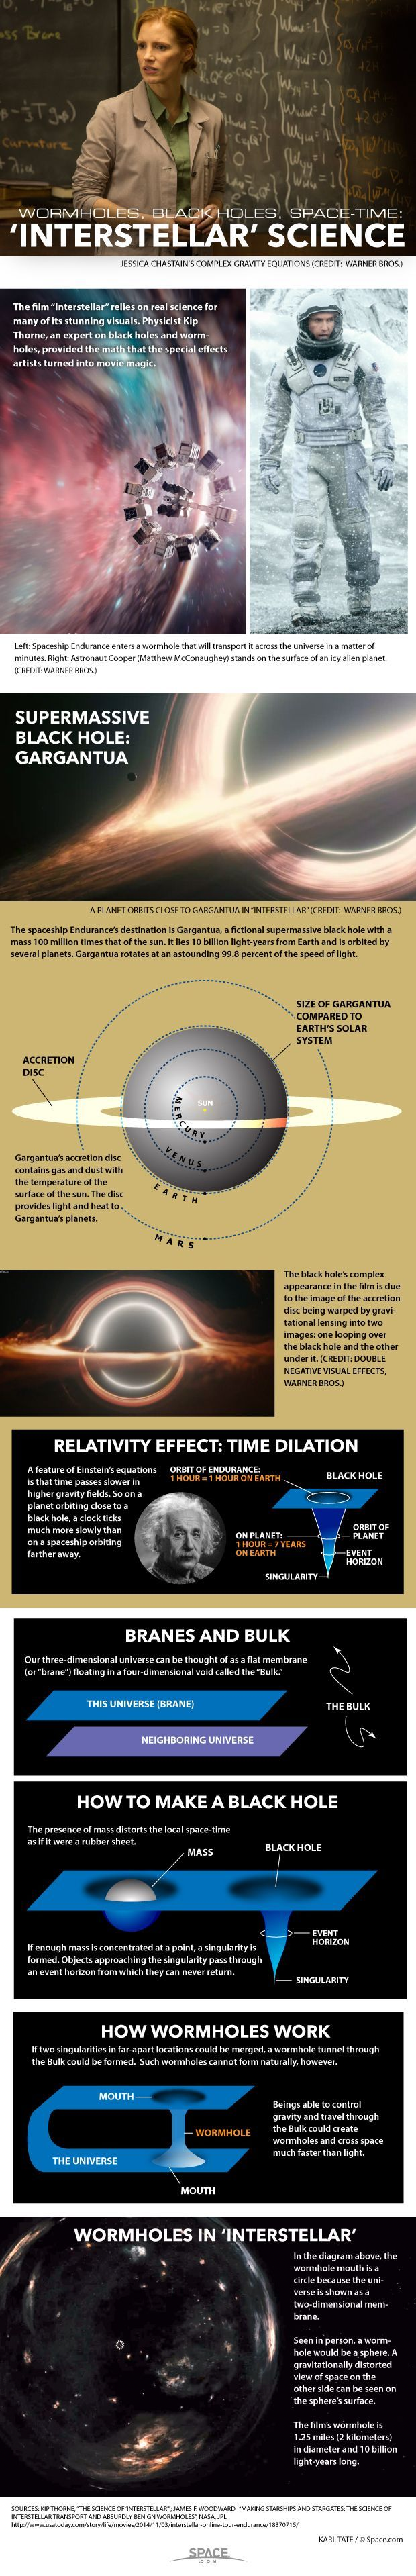 Wormhole travel across the universe and supergiant black holes are just some of the wonders seen in the film 'Interstellar.' See how the film's astrophysics works in this Space.com infographic.: